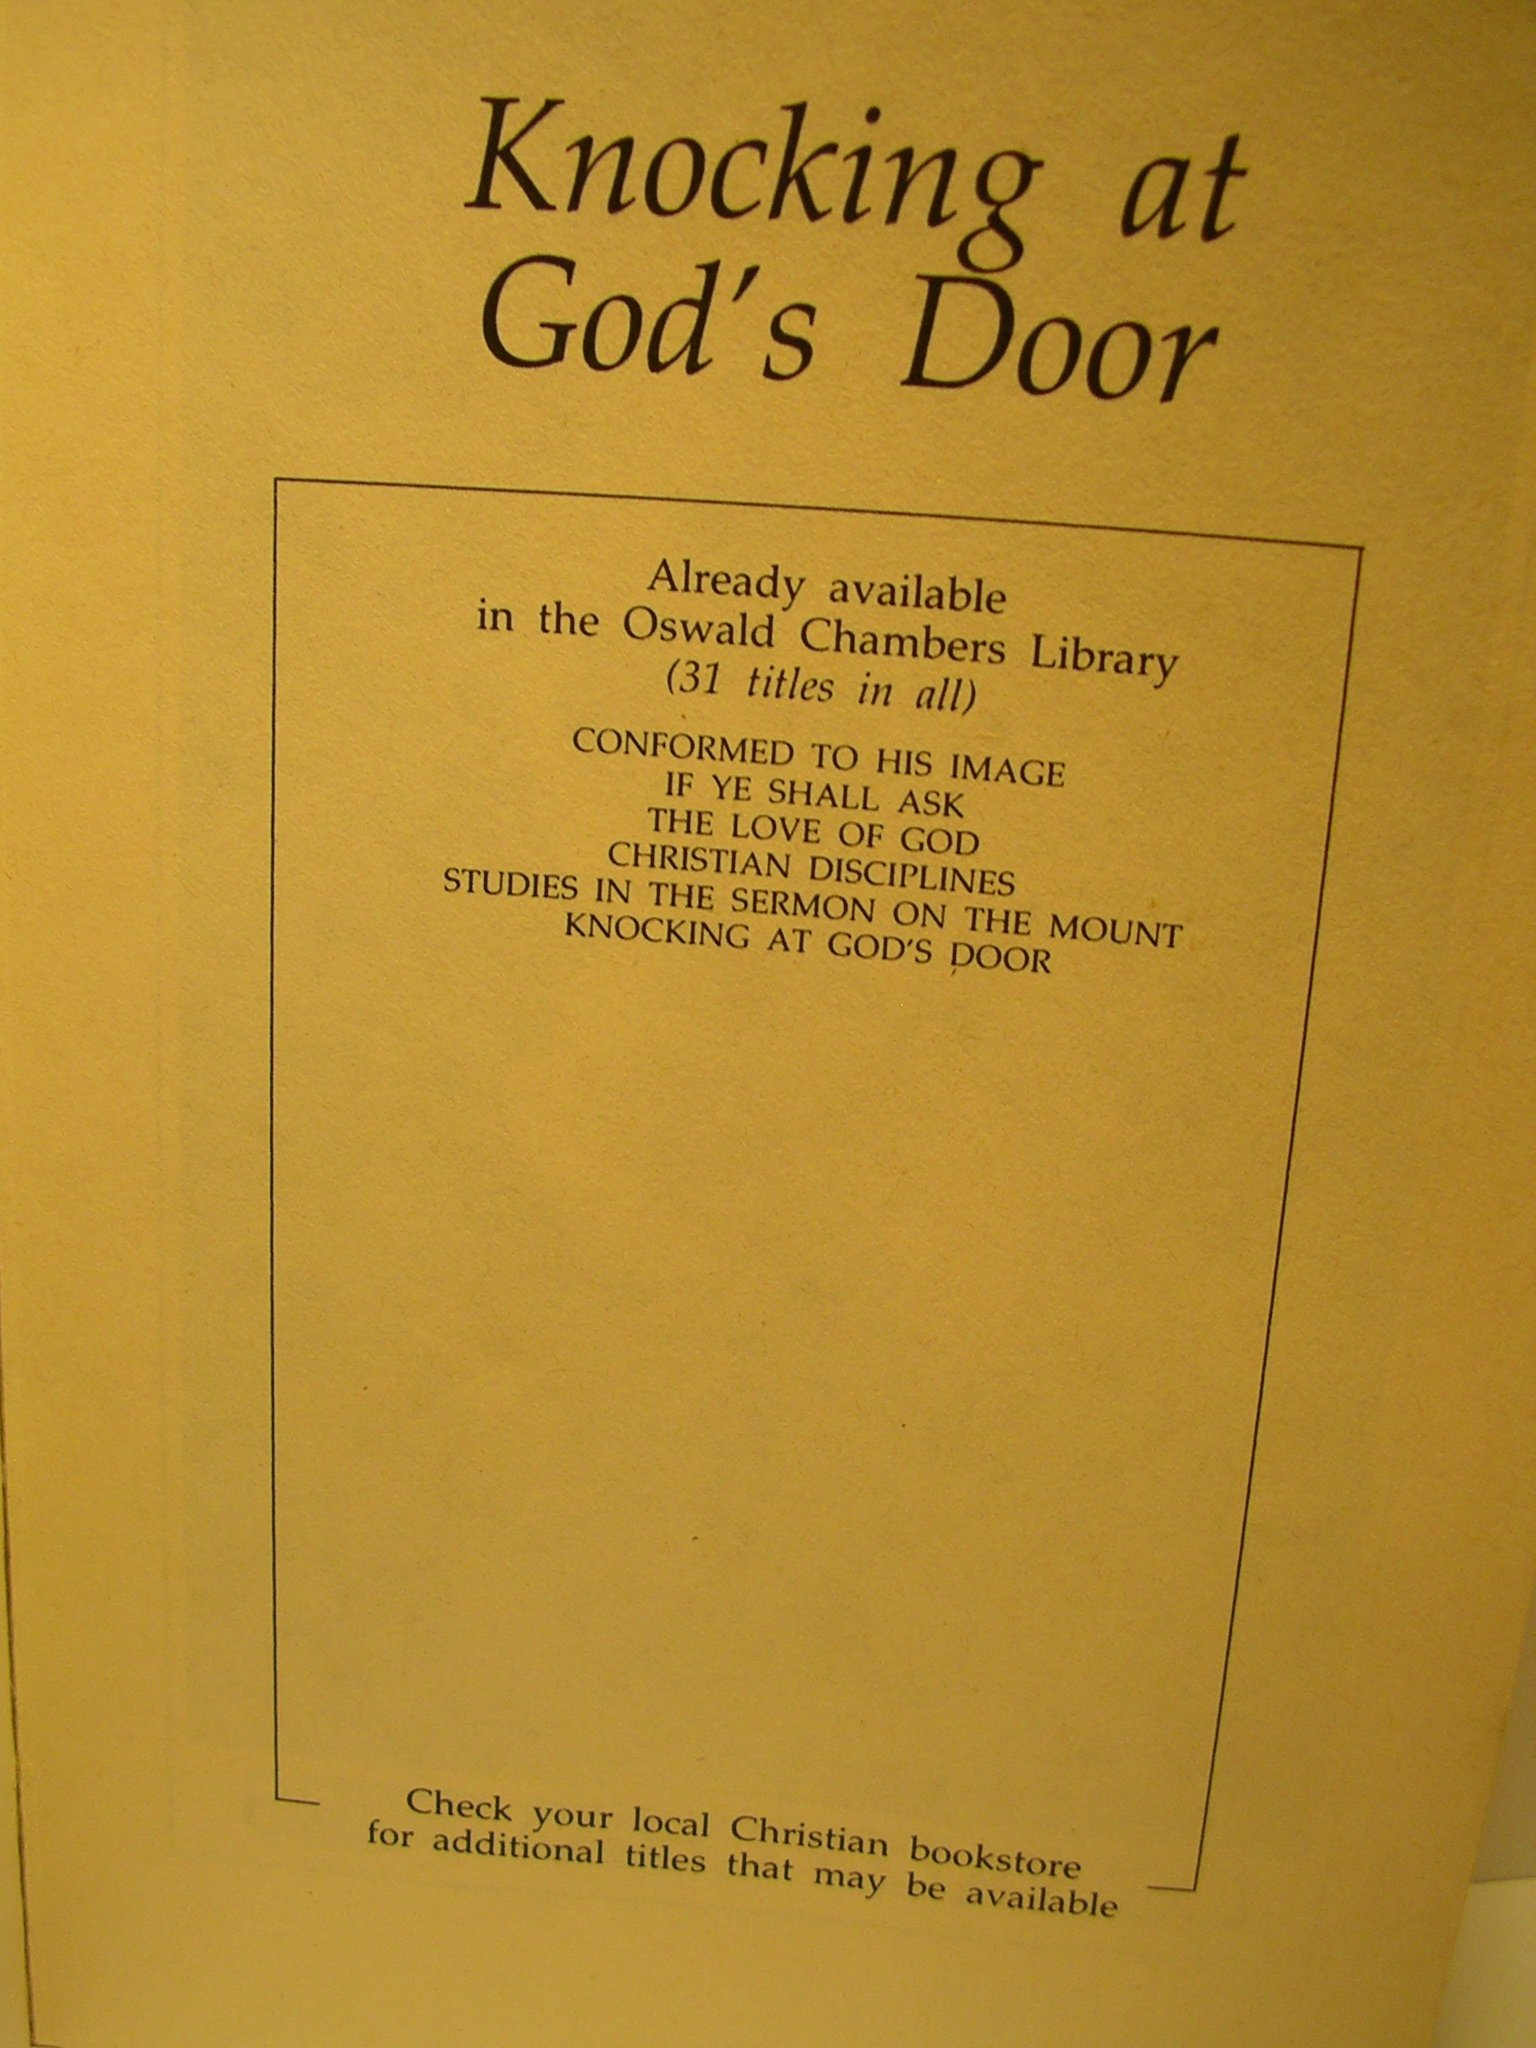 Knocking at Godu0027s Door (Oswald Chambers library) Oswald Chambers 9780310610014 Amazon.com Books & Knocking at Godu0027s Door (Oswald Chambers library): Oswald Chambers ...